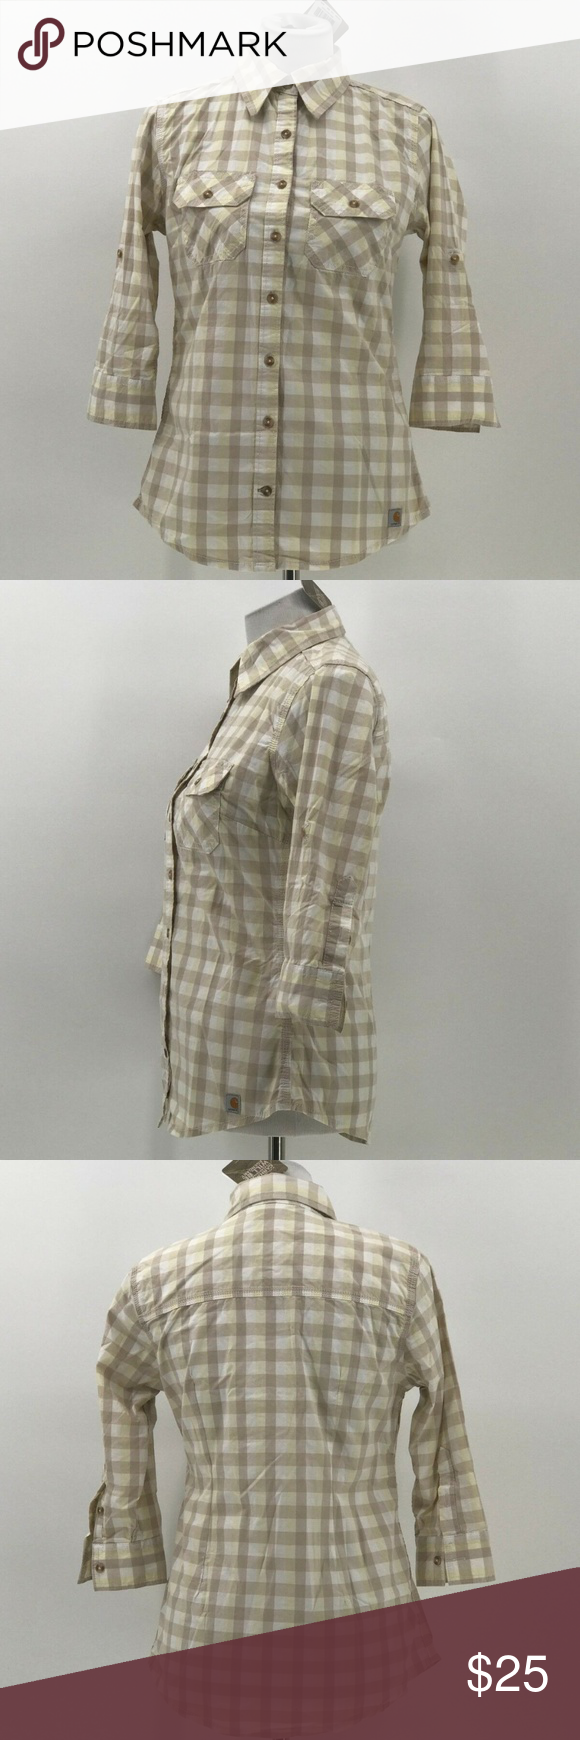 carhartt womens button up shirt sz XS NWT carhartt womens button up shirt sz XS 0-2 plaid 3/4 sleeve NWT  CU54 Carhartt Tops Button Down Shirts #carharttwomen carhartt womens button up shirt sz XS NWT carhartt womens button up shirt sz XS 0-2 plaid 3/4 sleeve NWT  CU54 Carhartt Tops Button Down Shirts #carharttwomen